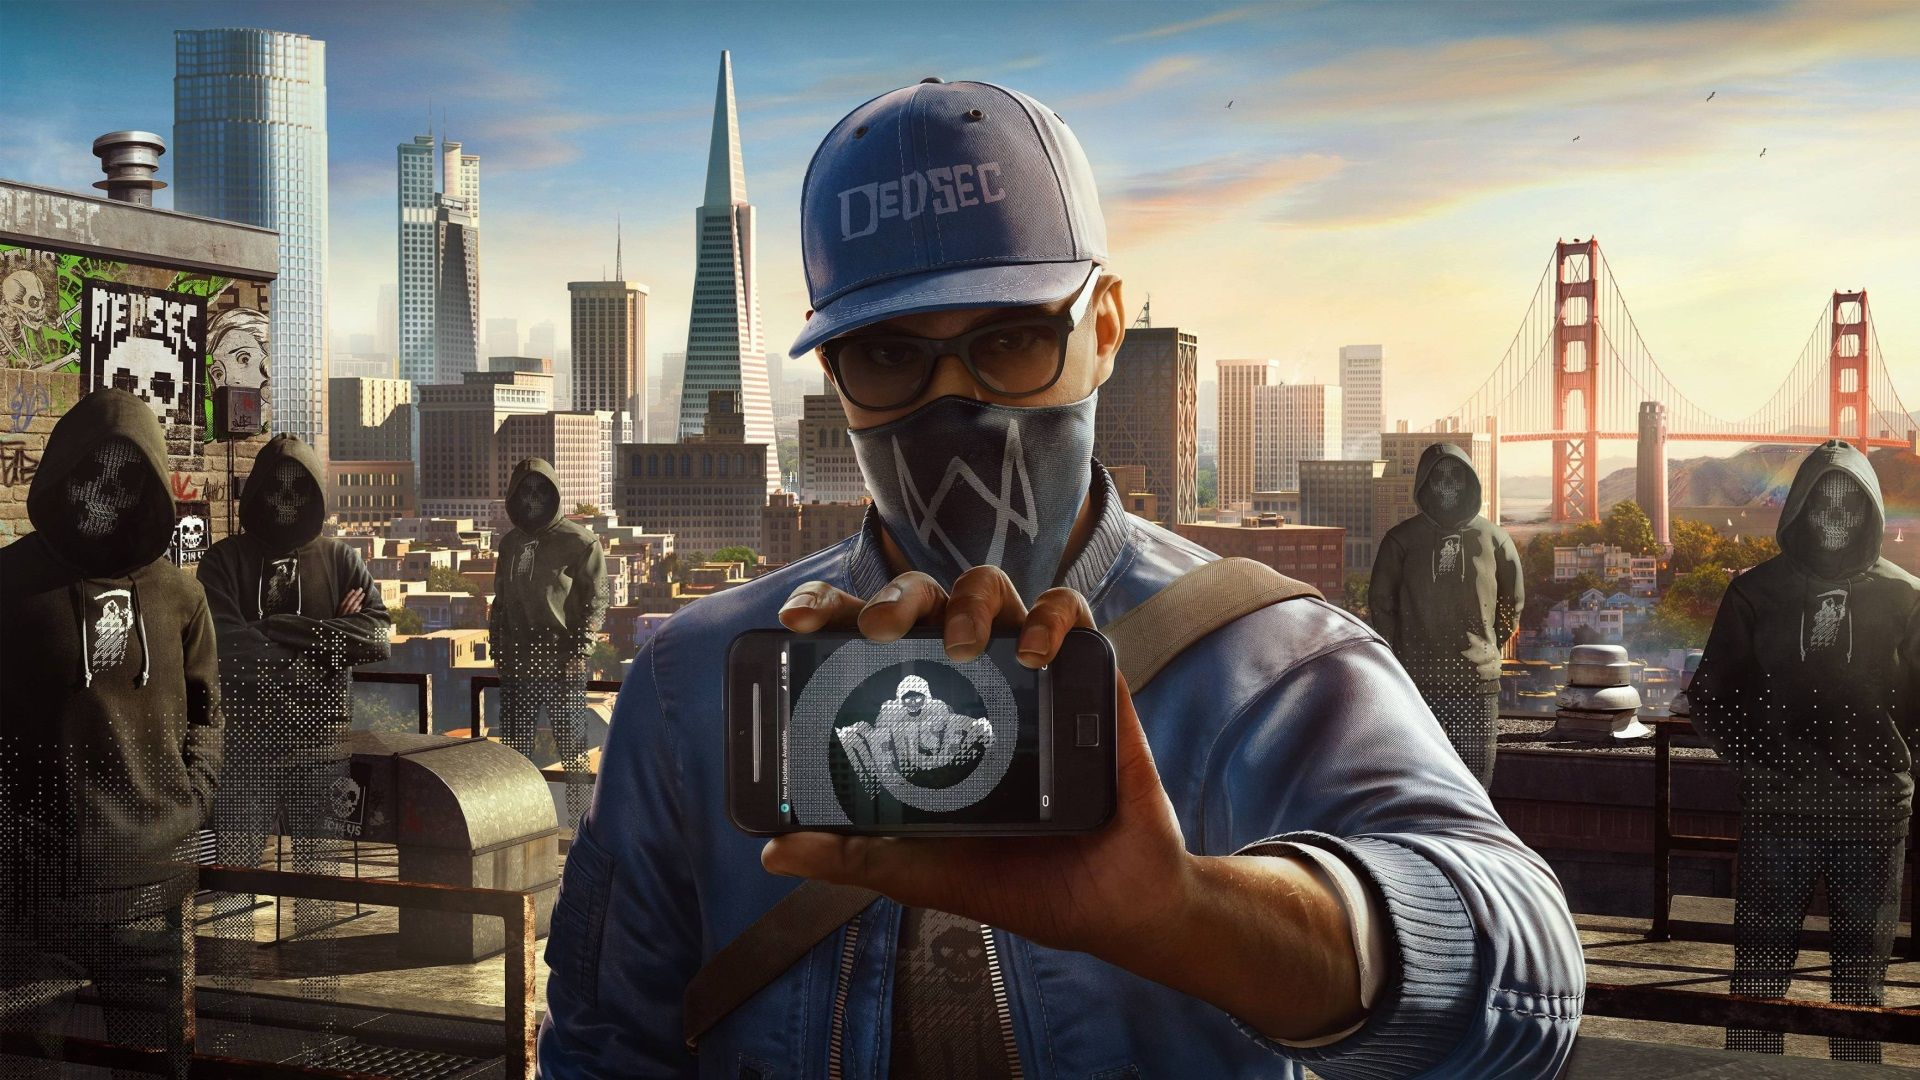 1920x1080 Watch Dogs 2 Wallpaper For Desktop Background Free Download Watch Dogs Watchdogs 2 Ubisoft